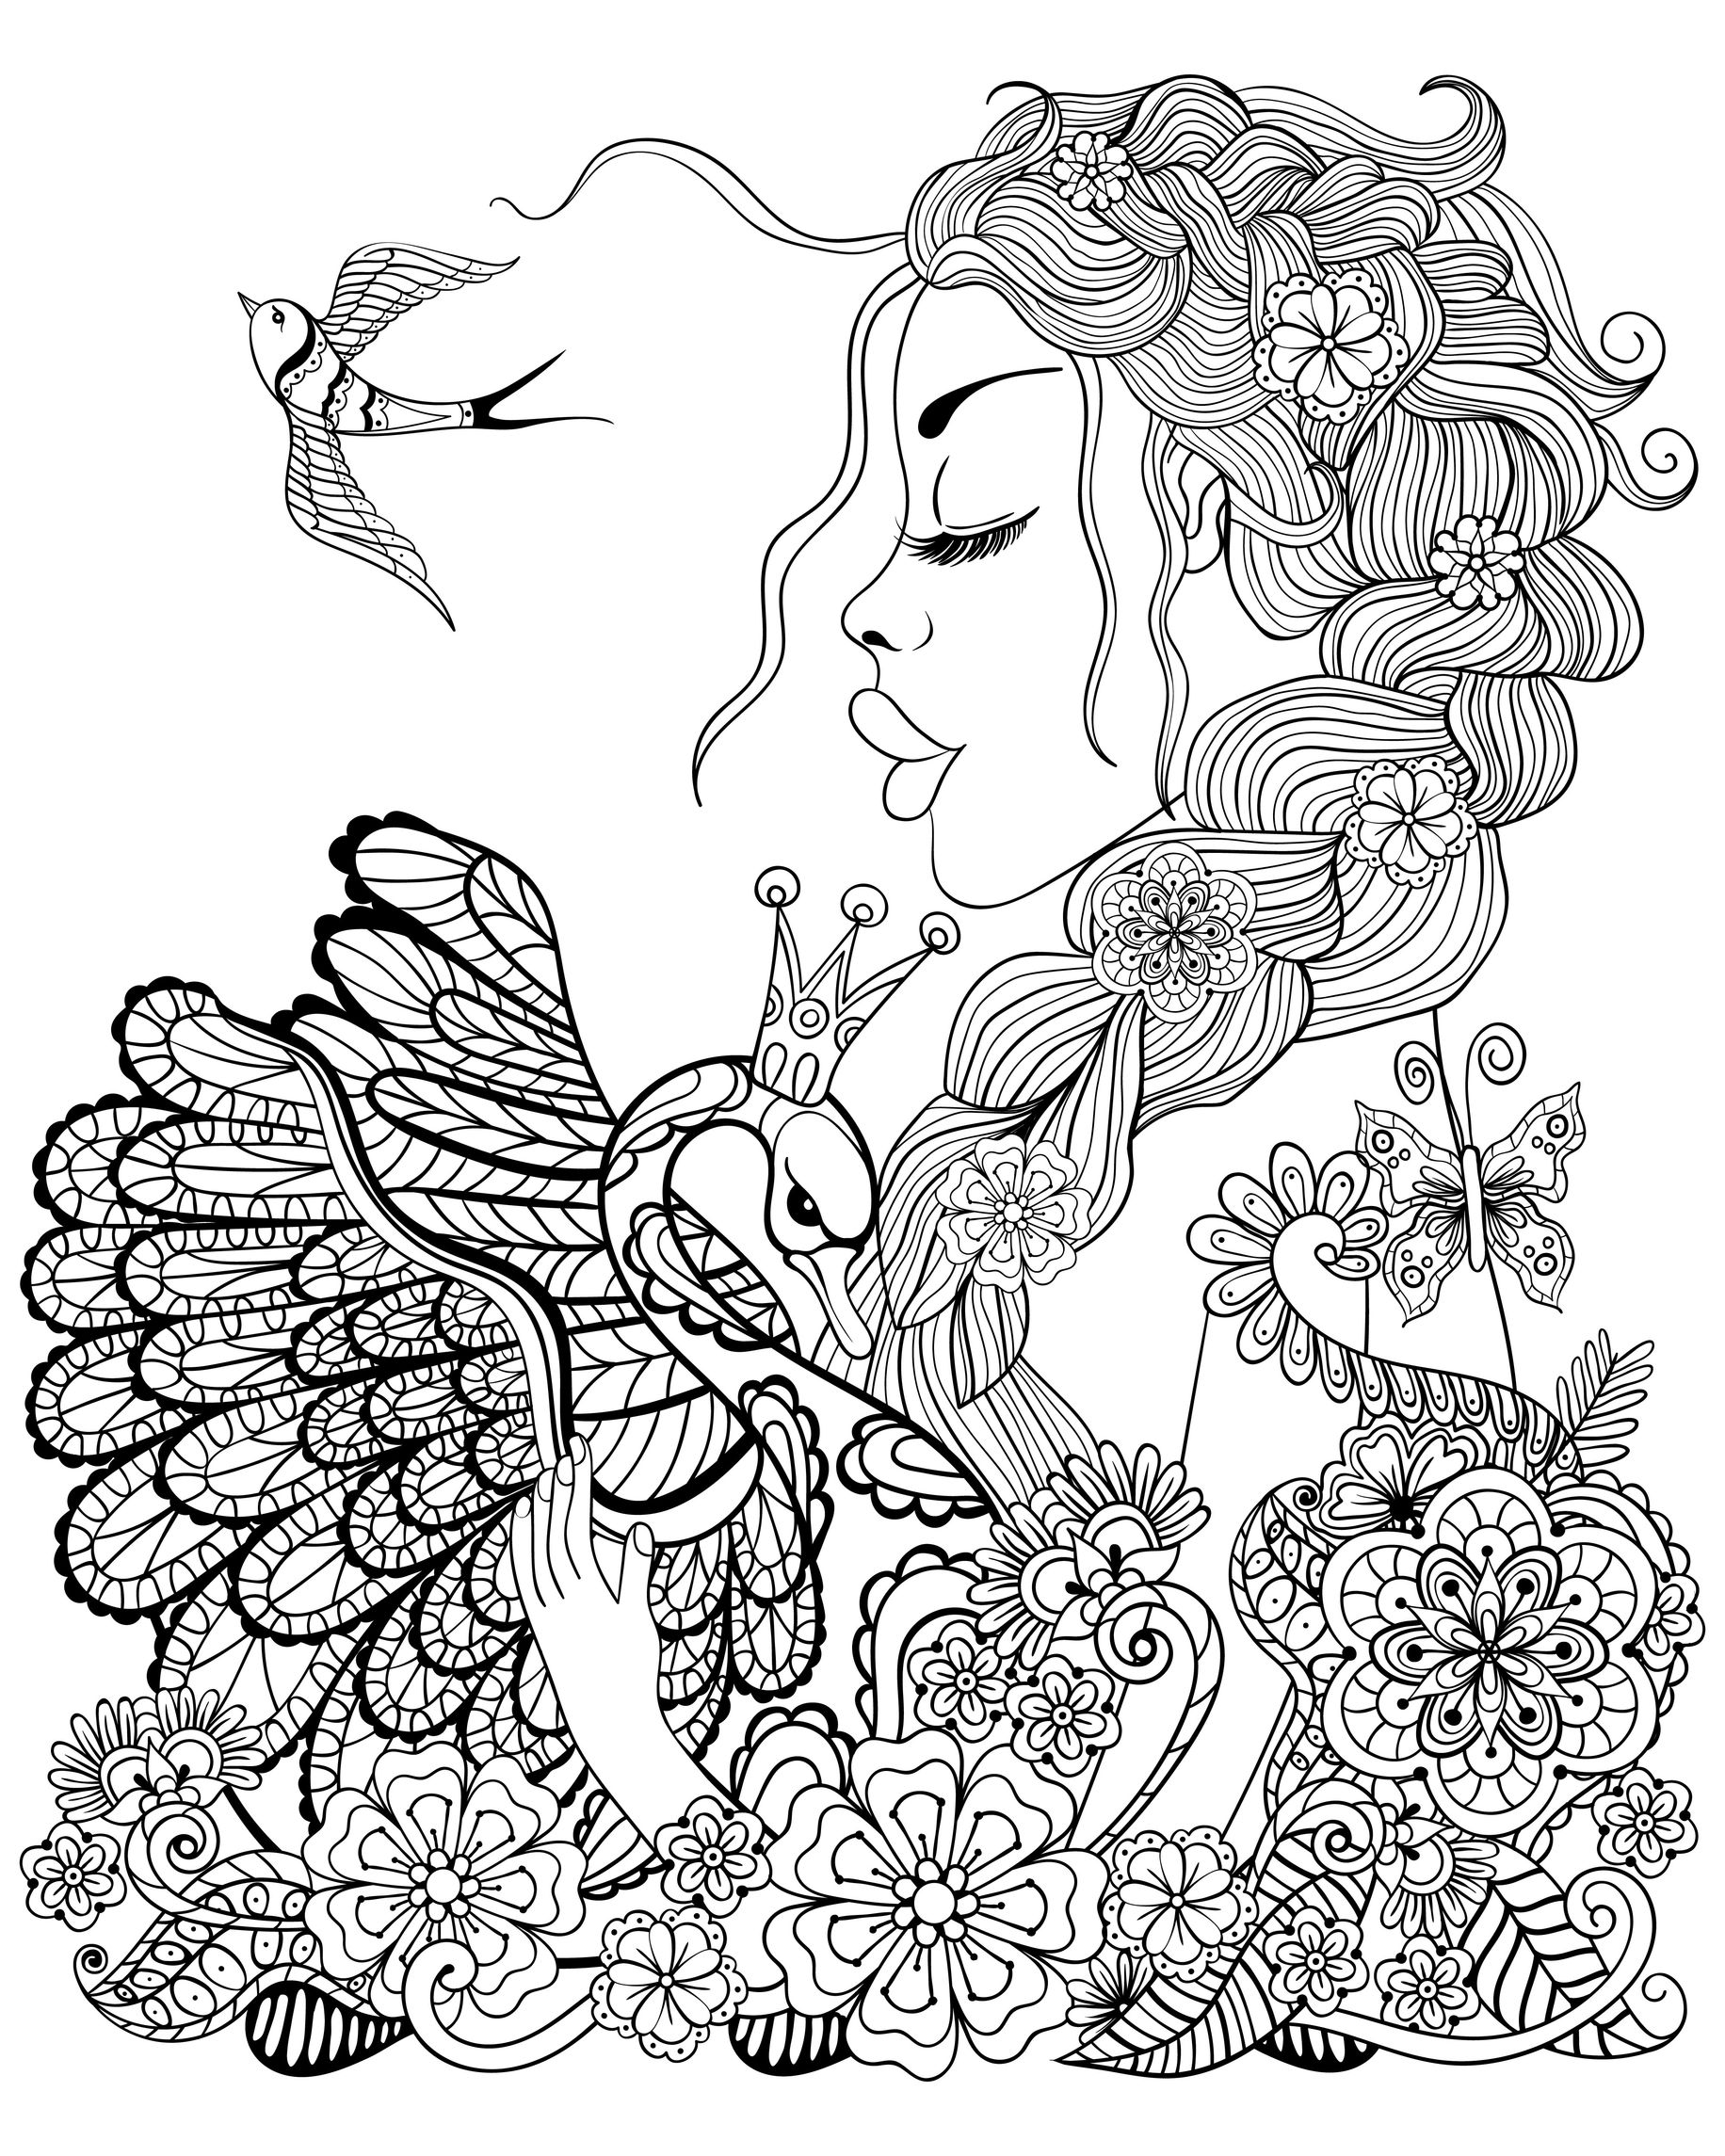 coloring pages for adults women image result for coloring pages for women coloring pages adults coloring women for pages